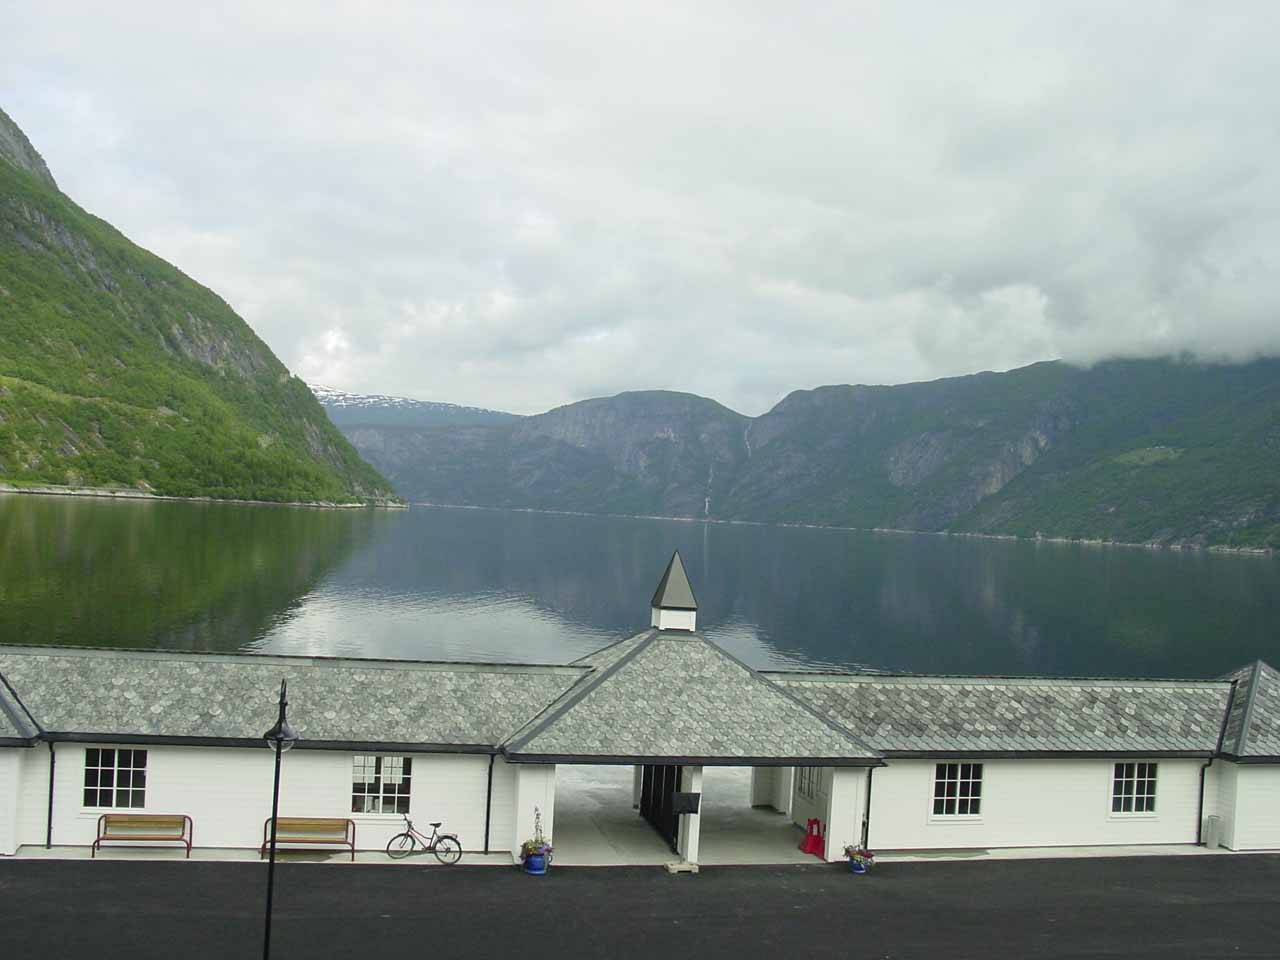 At the end of the day that we visited Vøringsfossen, we ultimately stayed in an attractive hotel in Eidfjord town right by the scenic fjord of the same name